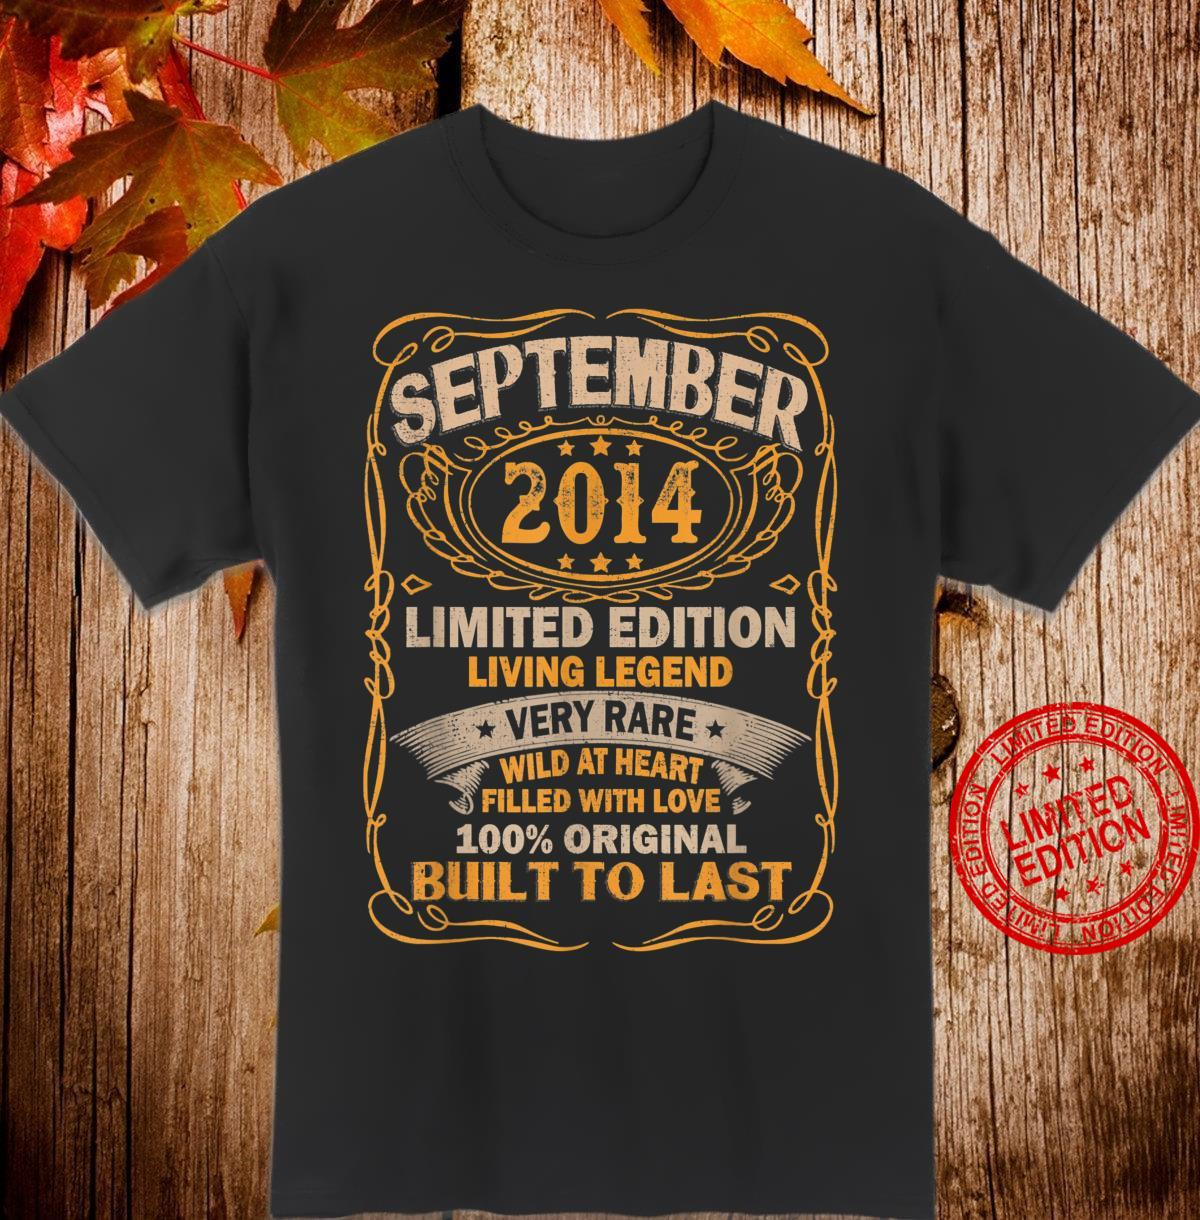 September 2014 Shirt 6 Years Old 6th Birthday Shirt